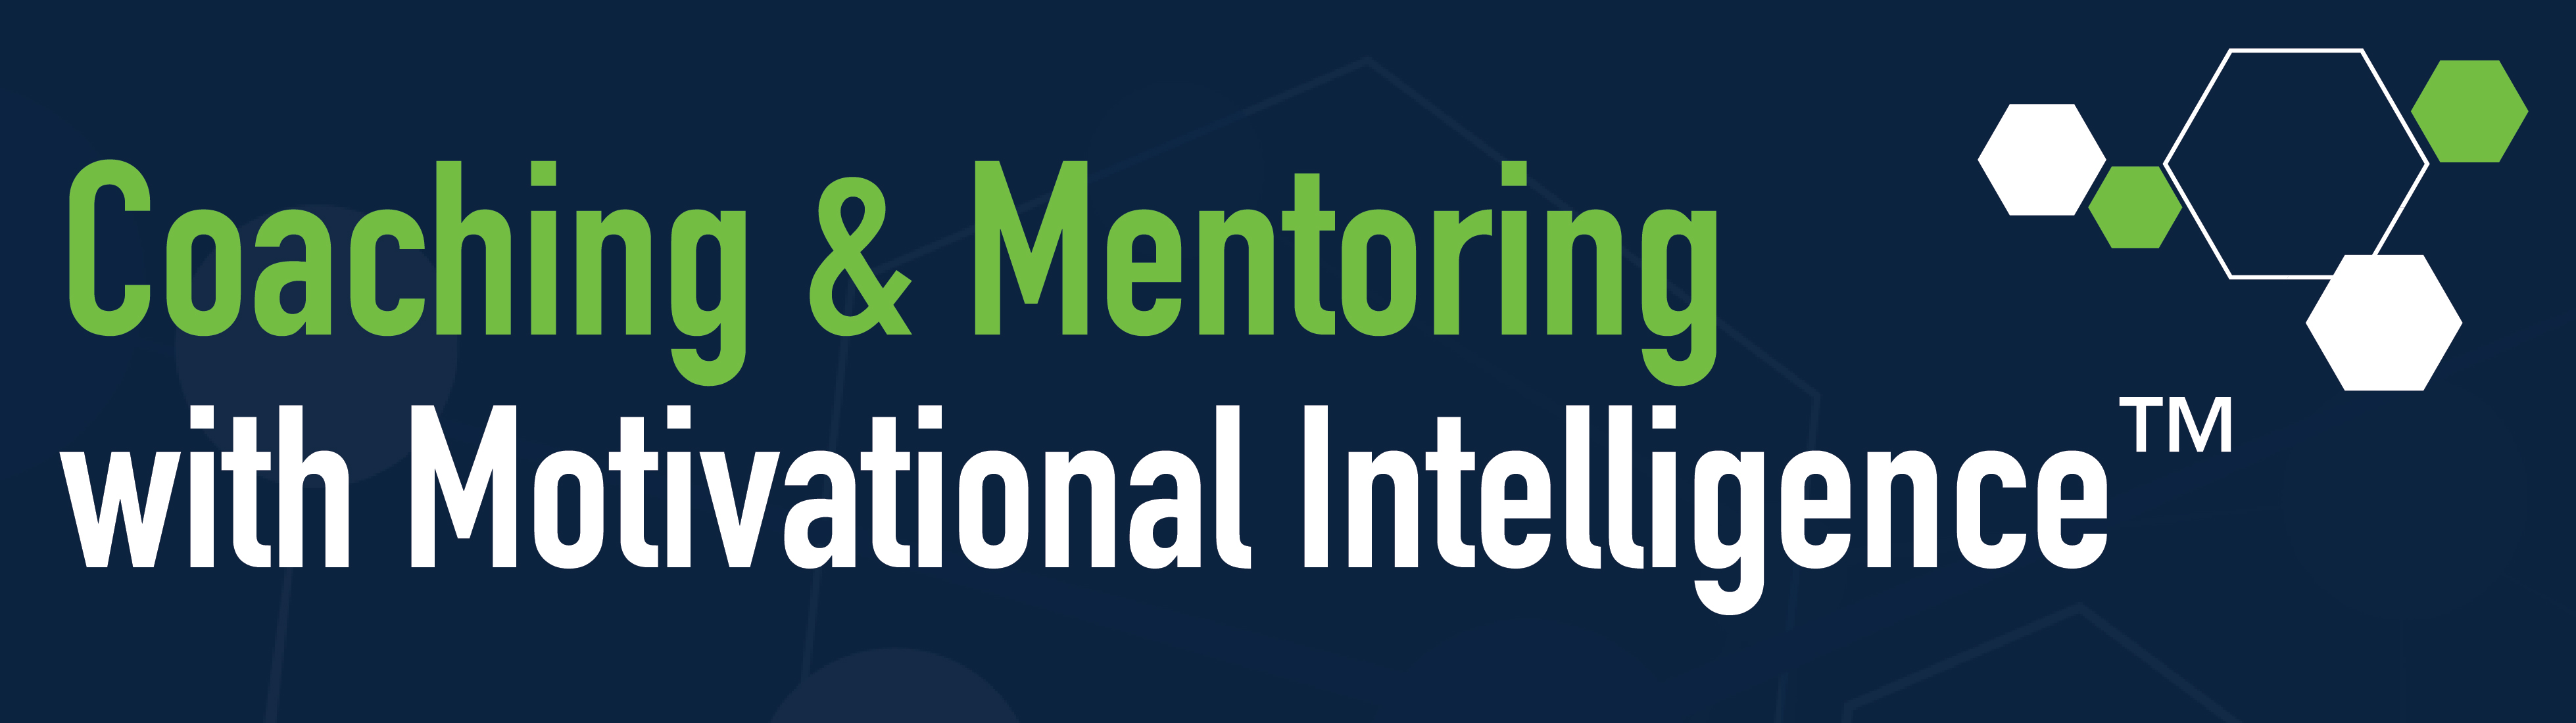 Coaching & Mentoring with Motivational Intelligence™